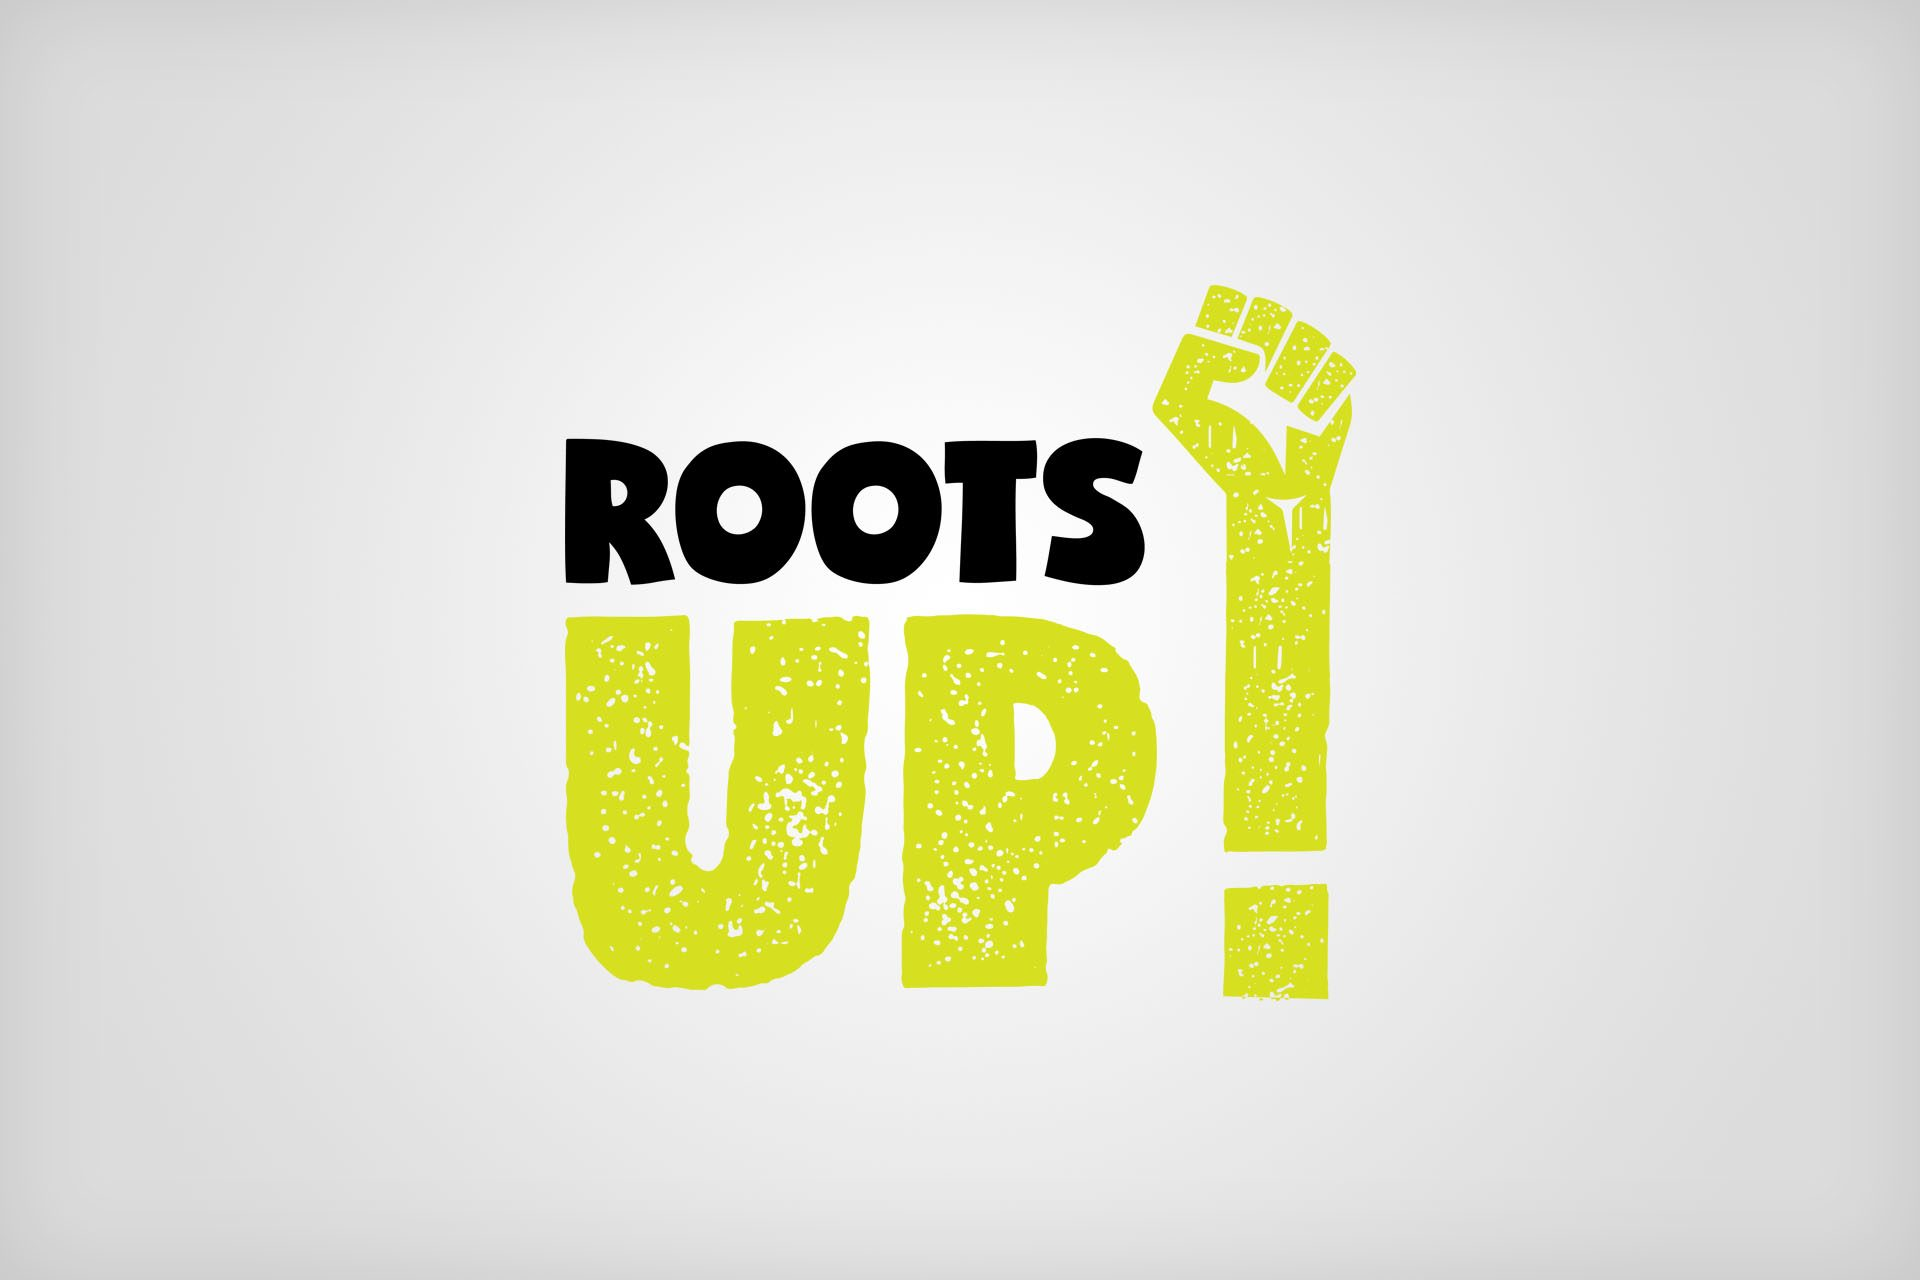 Roots Up Logo Design and Branding